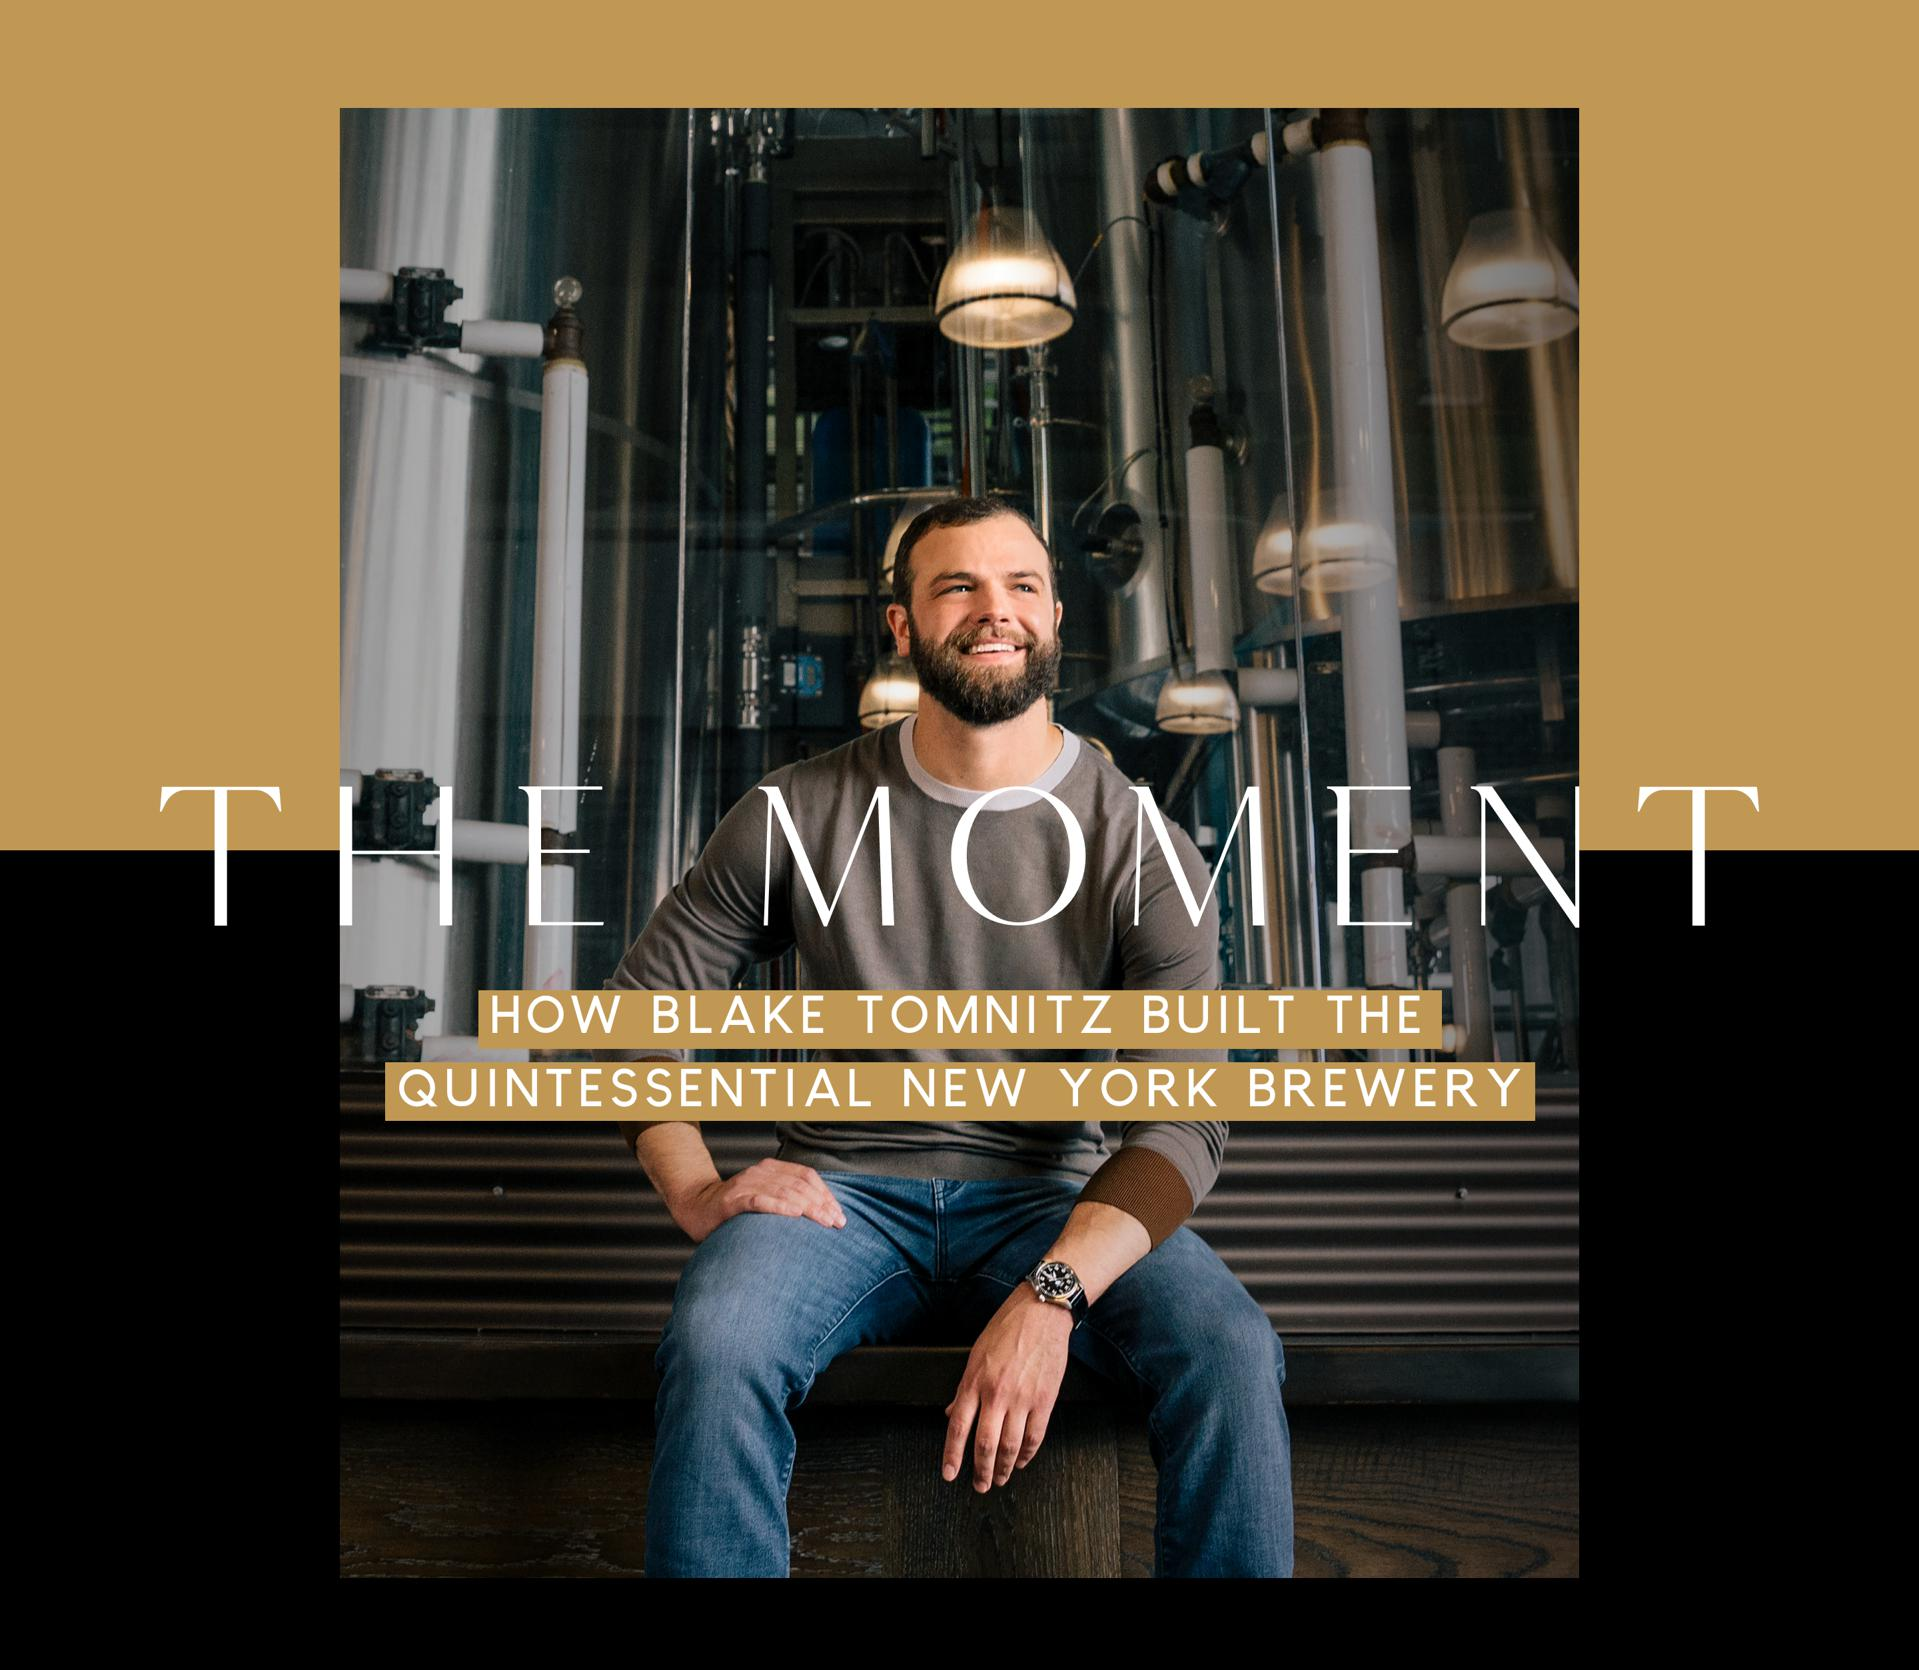 The Moment: How Blake Tomnitz Built The Quintessential New York Brewery